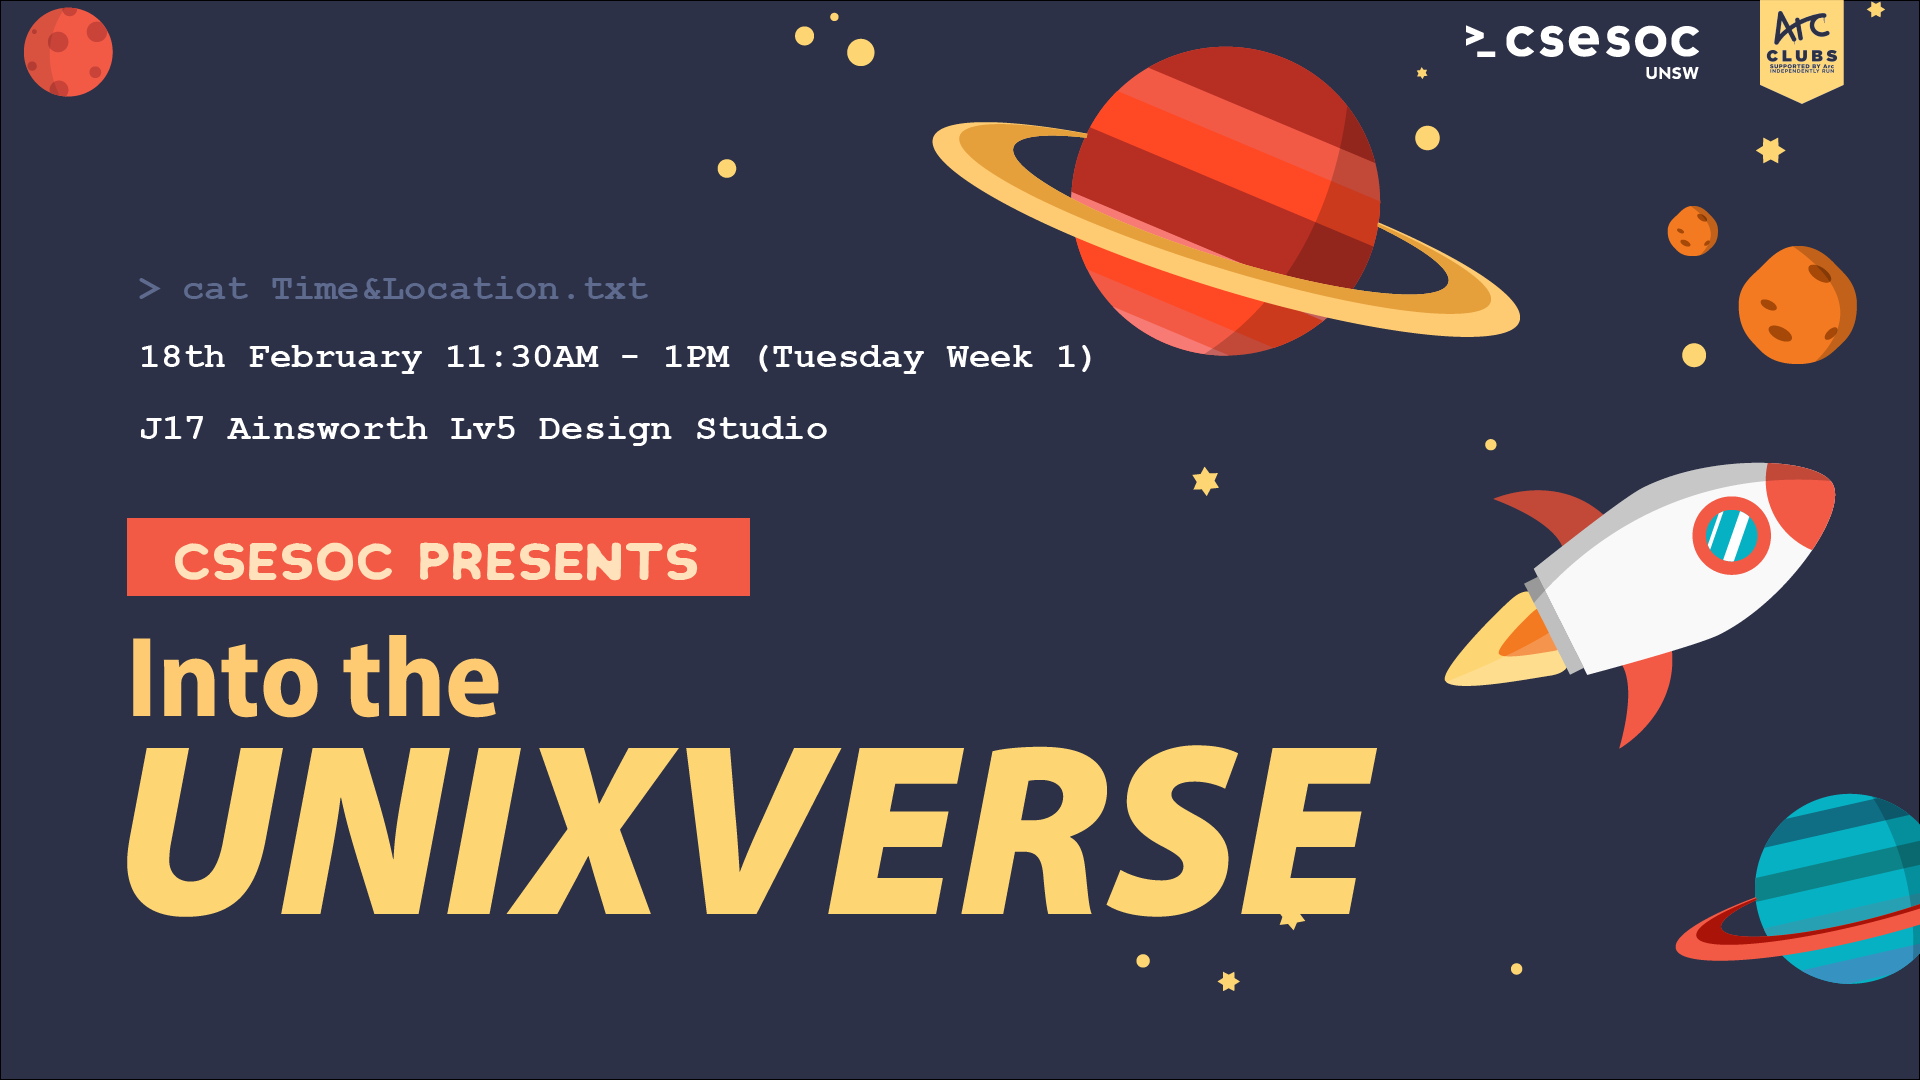 Into the UNIXverse: An Introduction to Unix